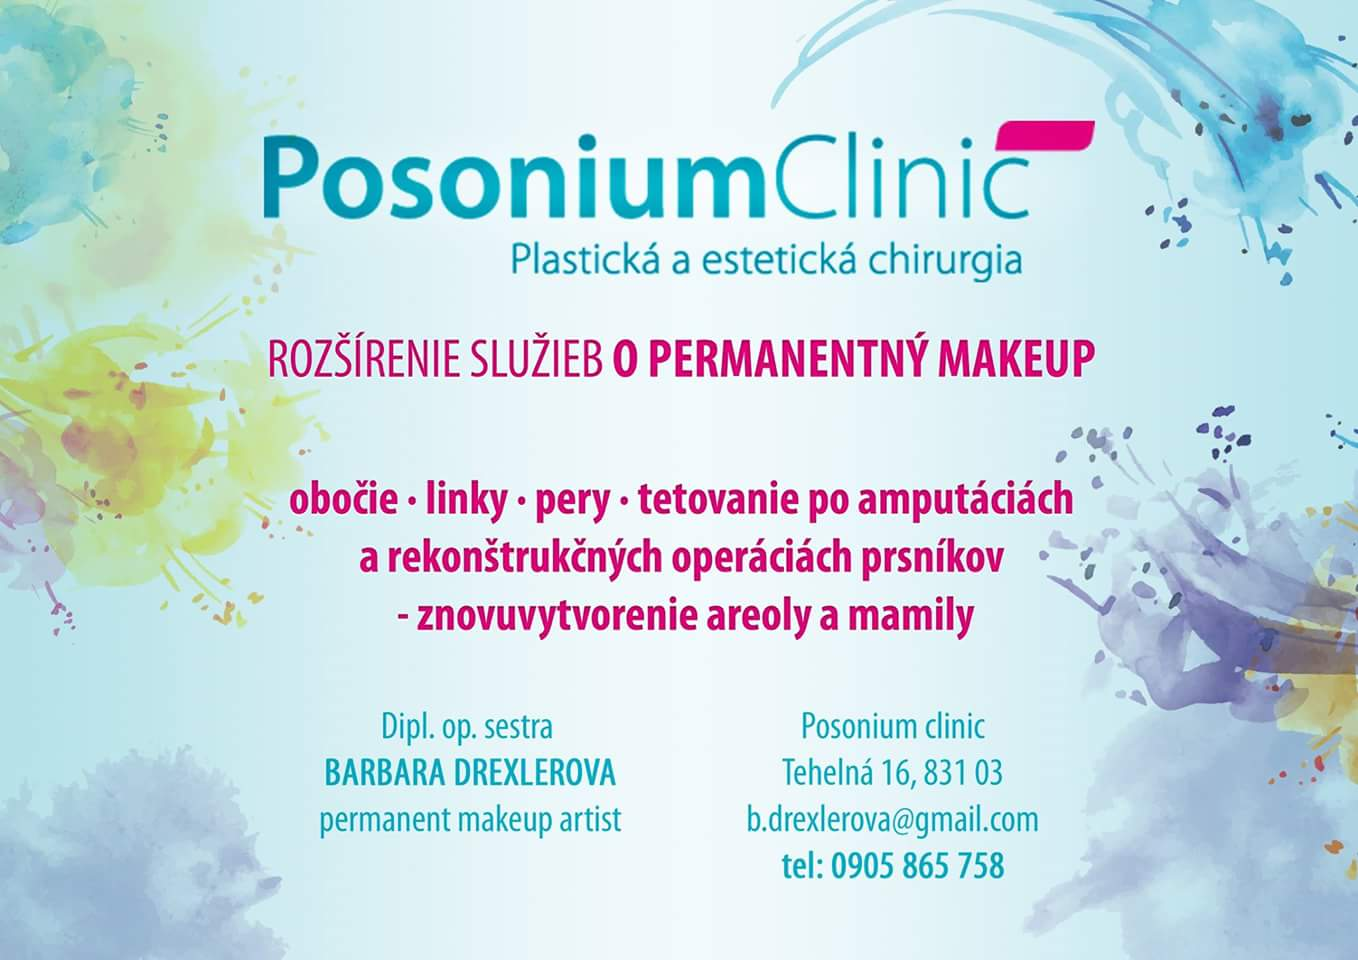 permannentný make-up